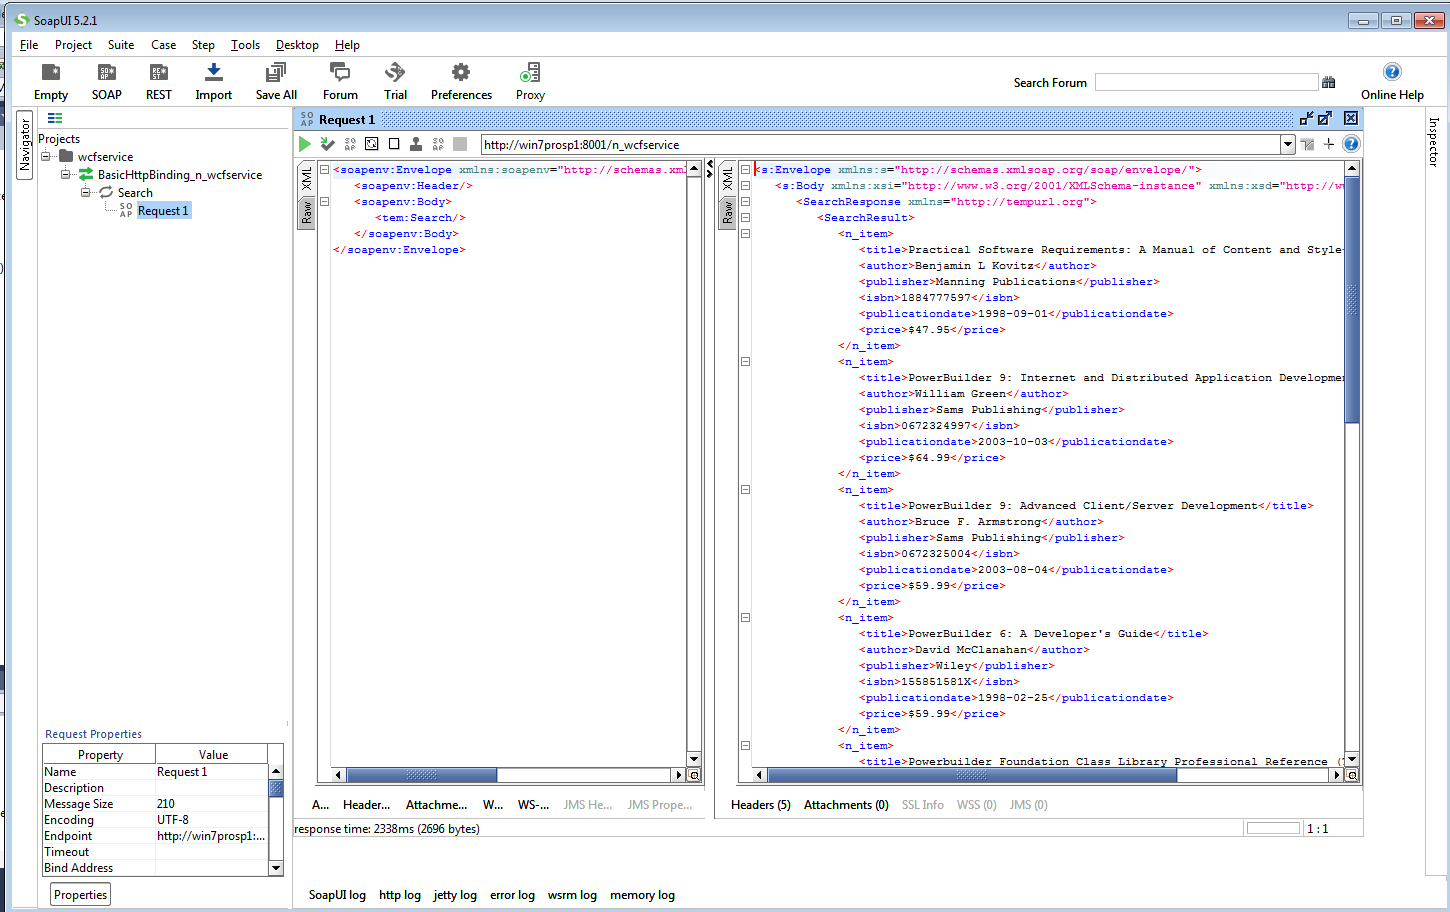 Bruce Armstrong's blog: Calling WCF web services from PowerBuilder